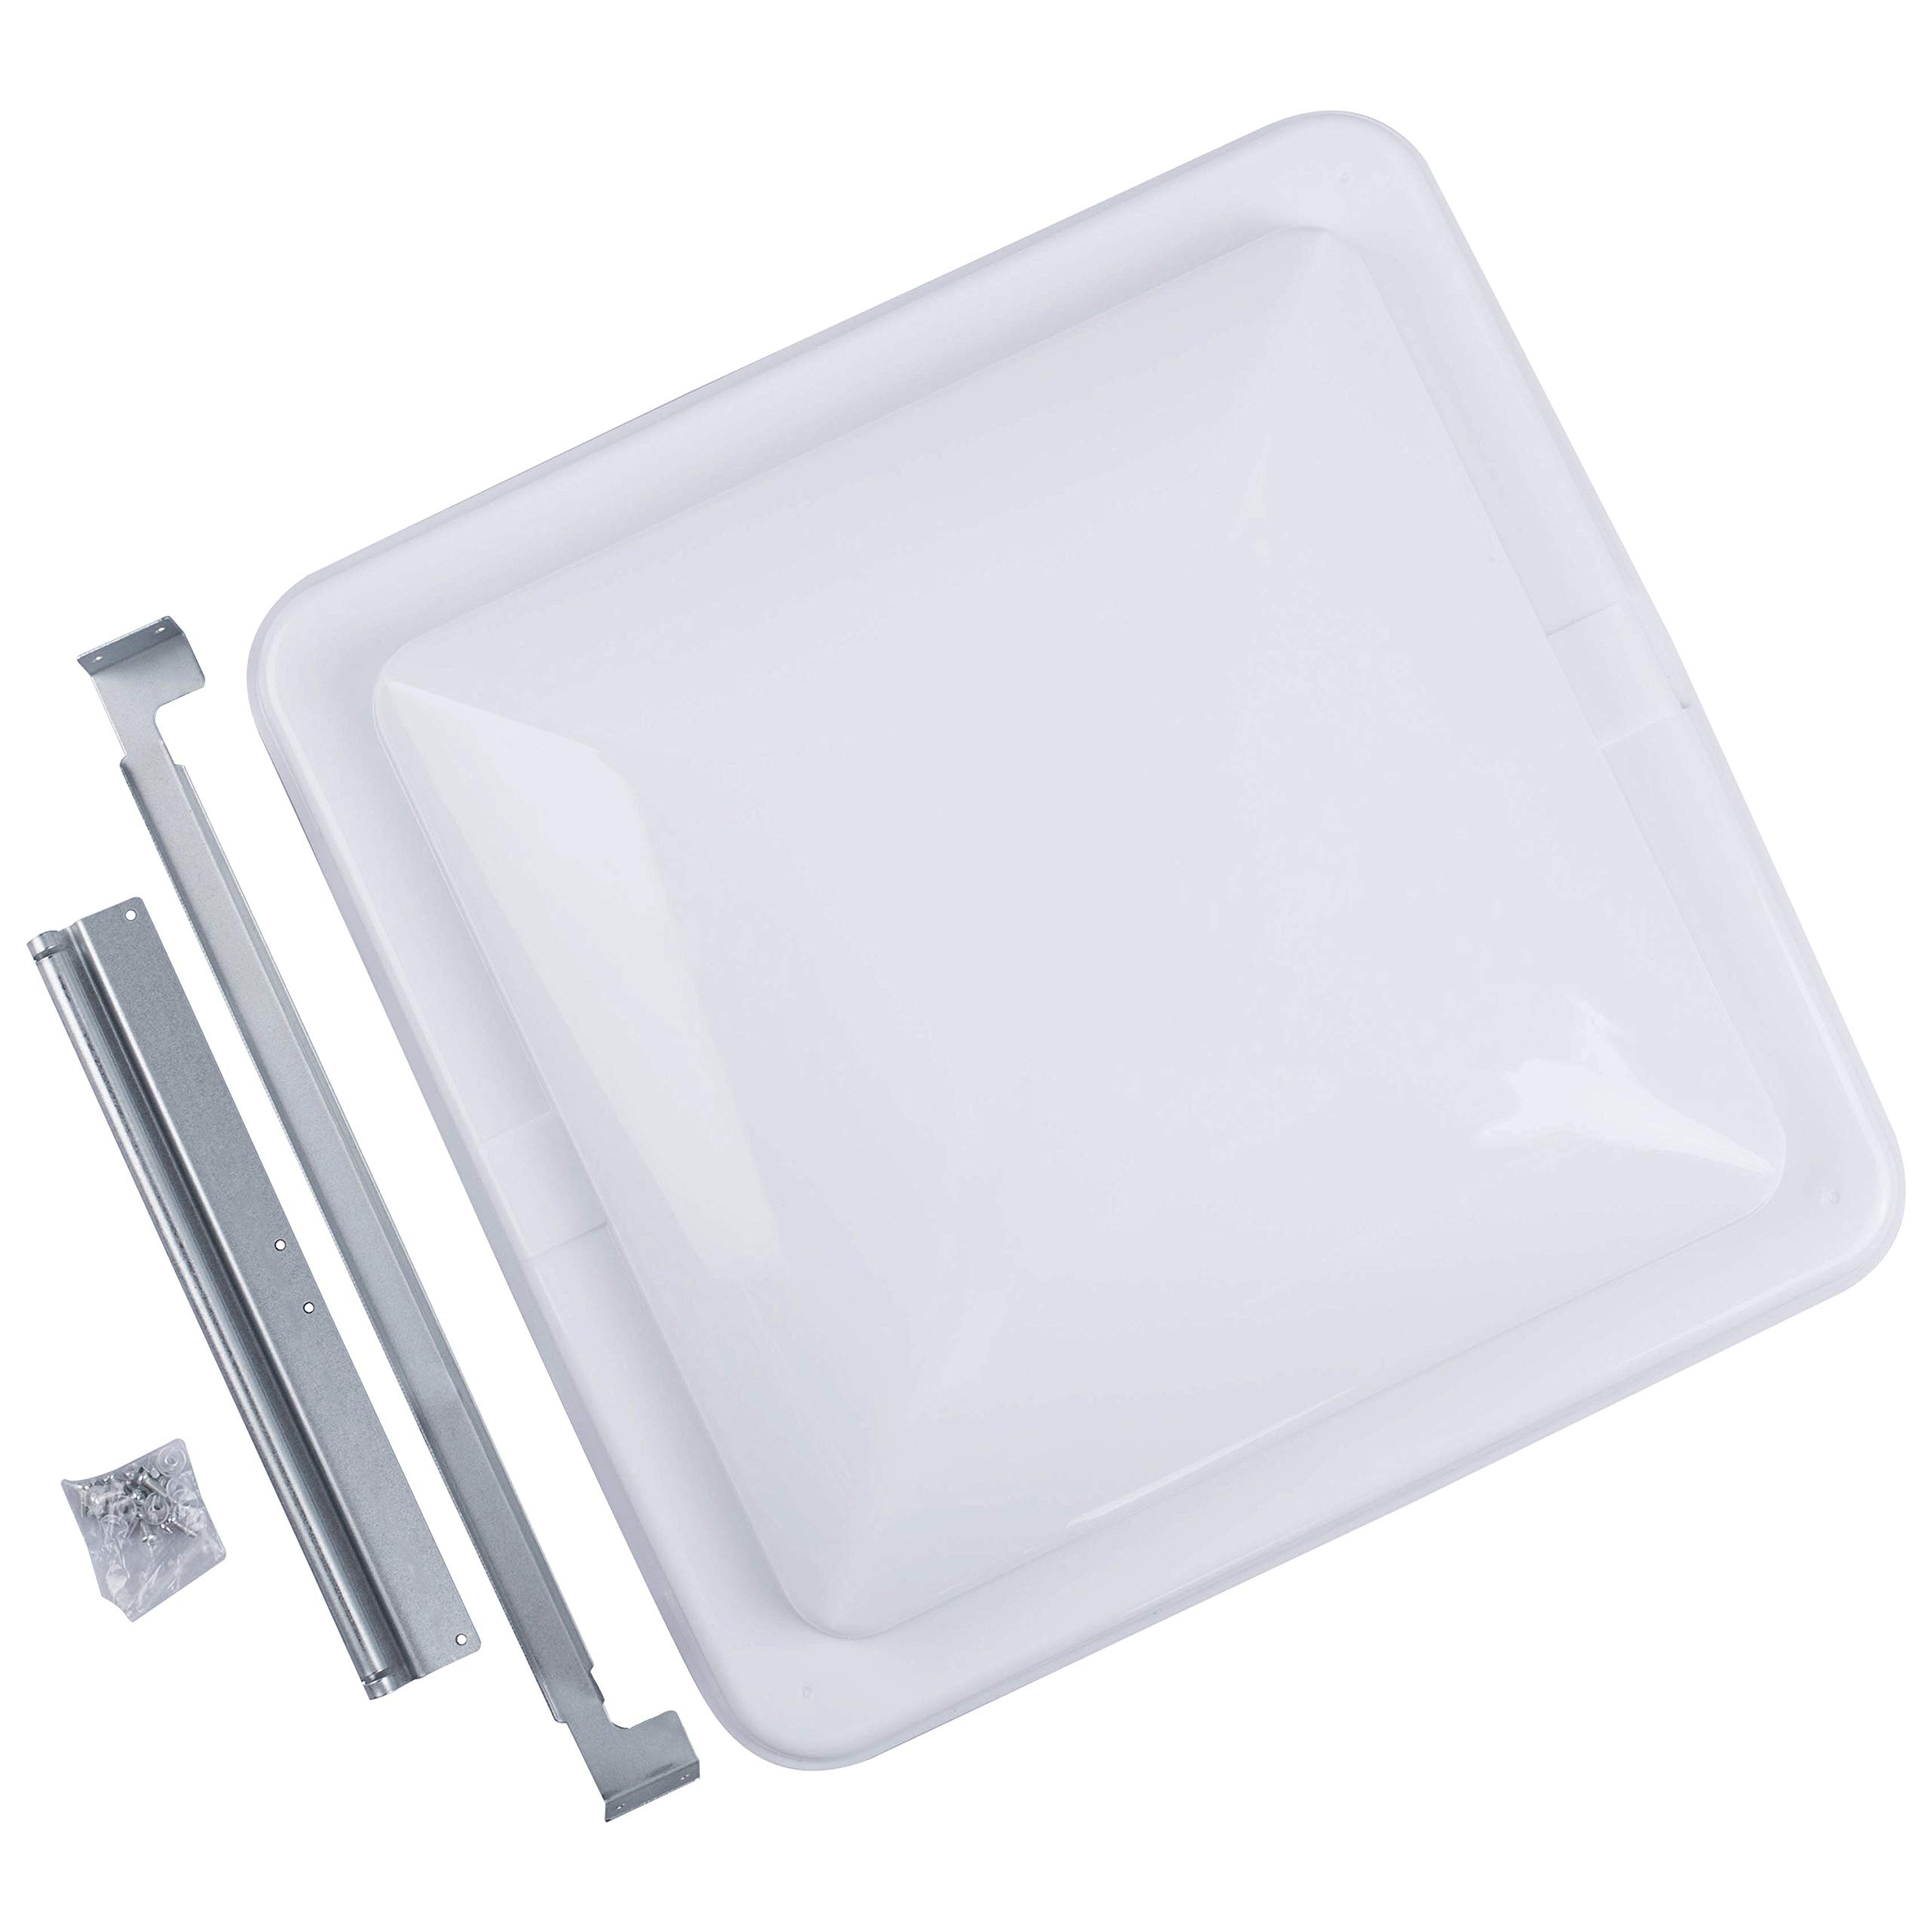 Camp'N 14'' Universal RV, Trailer, Camper, Motorhome Roof Vent Cover - Vent Lid Replacement (White 1 Pack) by Camp'N